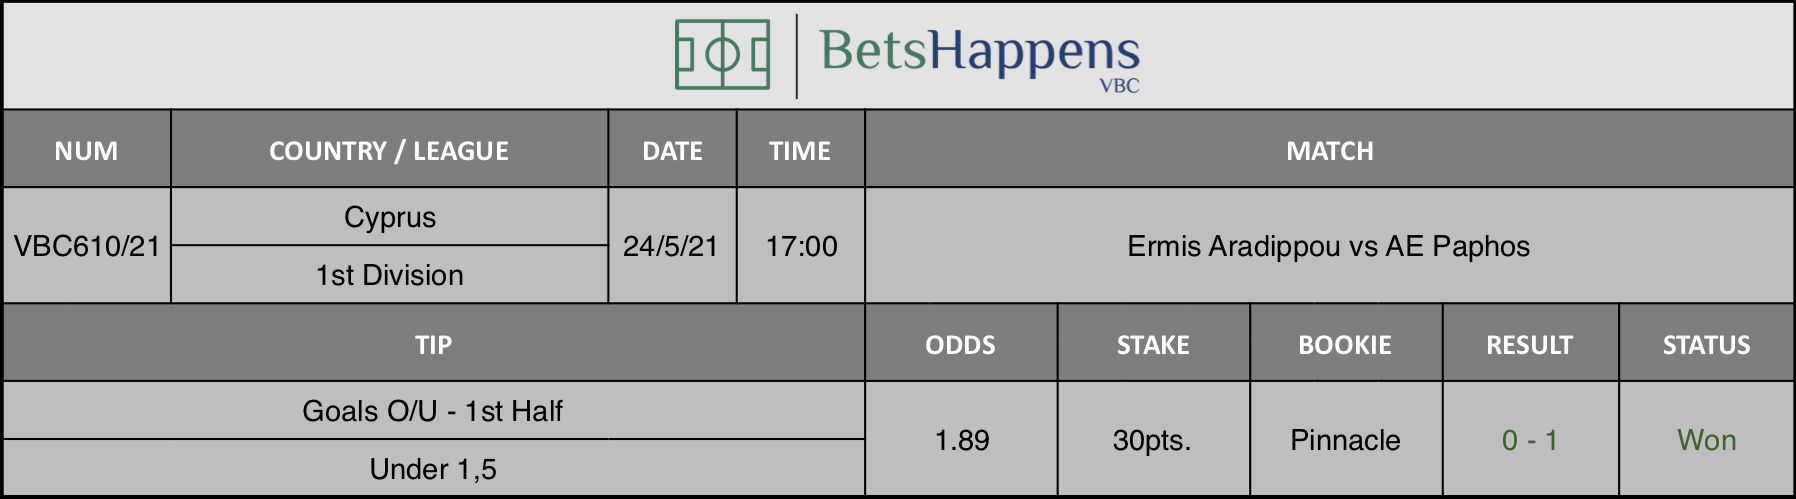 Results of our tip for the Ermis Aradippou vs AE Paphos match where Goals O/U - 1st Half  Under 1,5 is recommended.